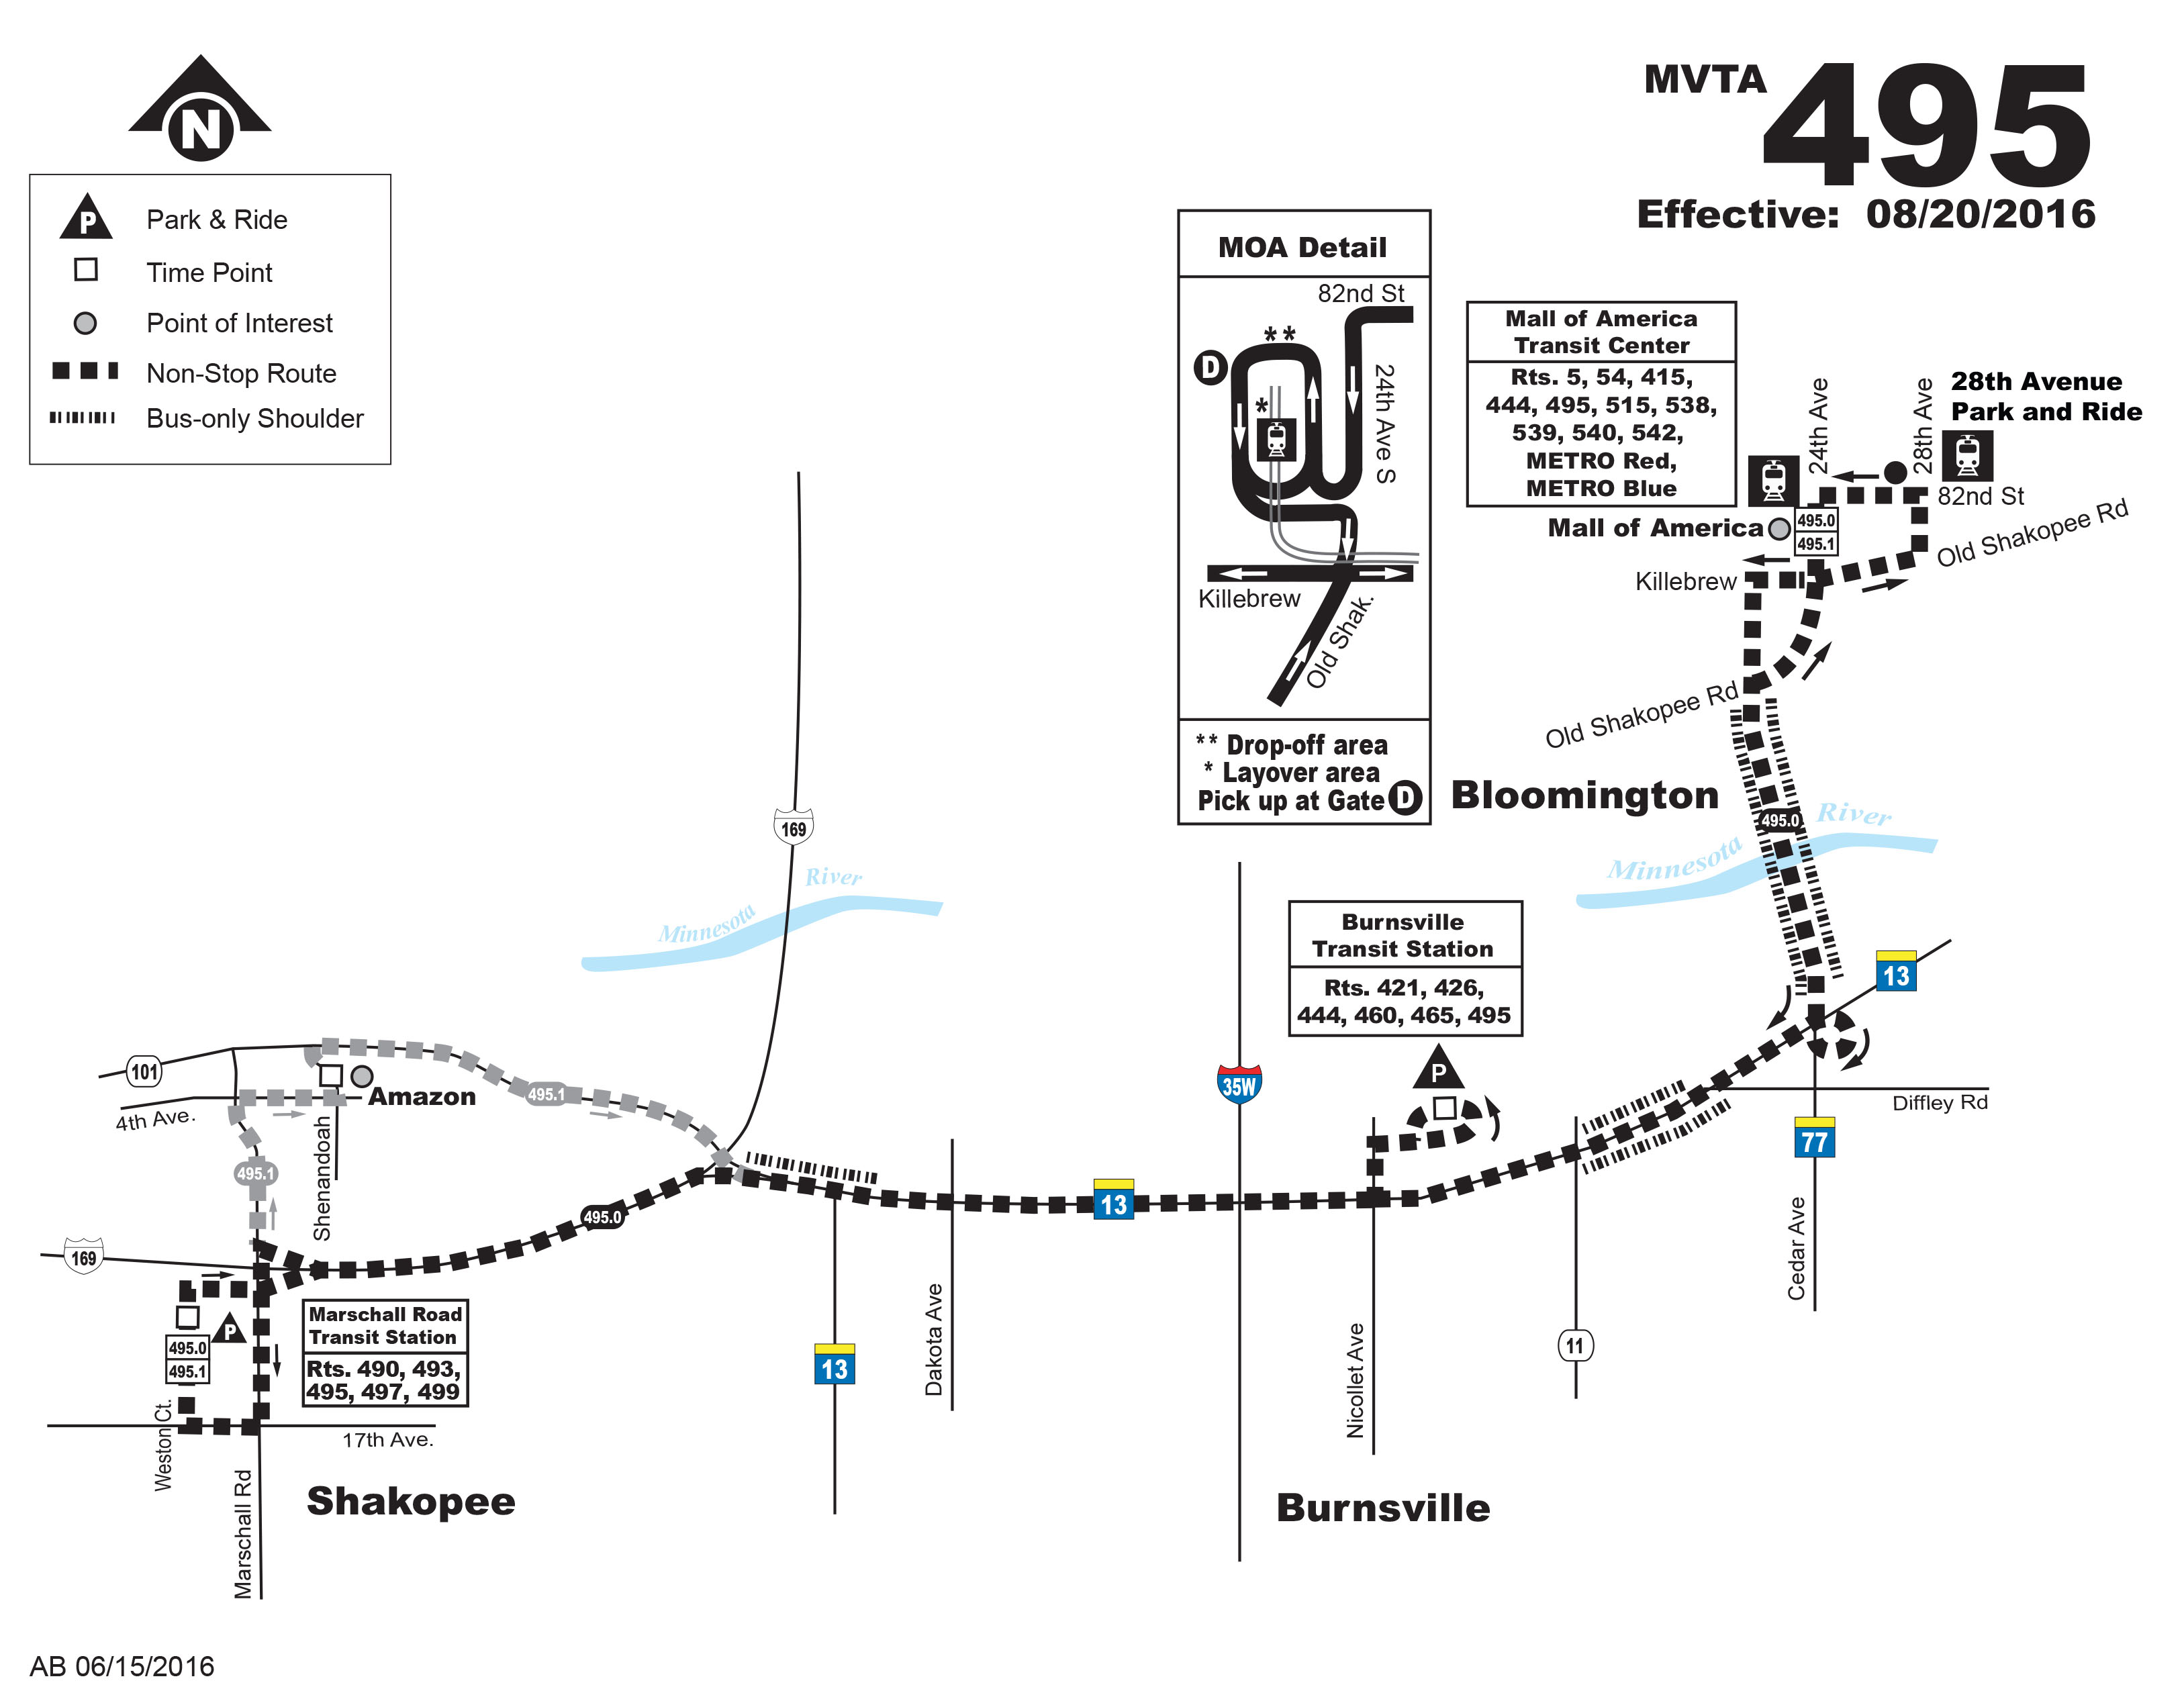 Ride the 495: Route provides options for work and play : MVTA